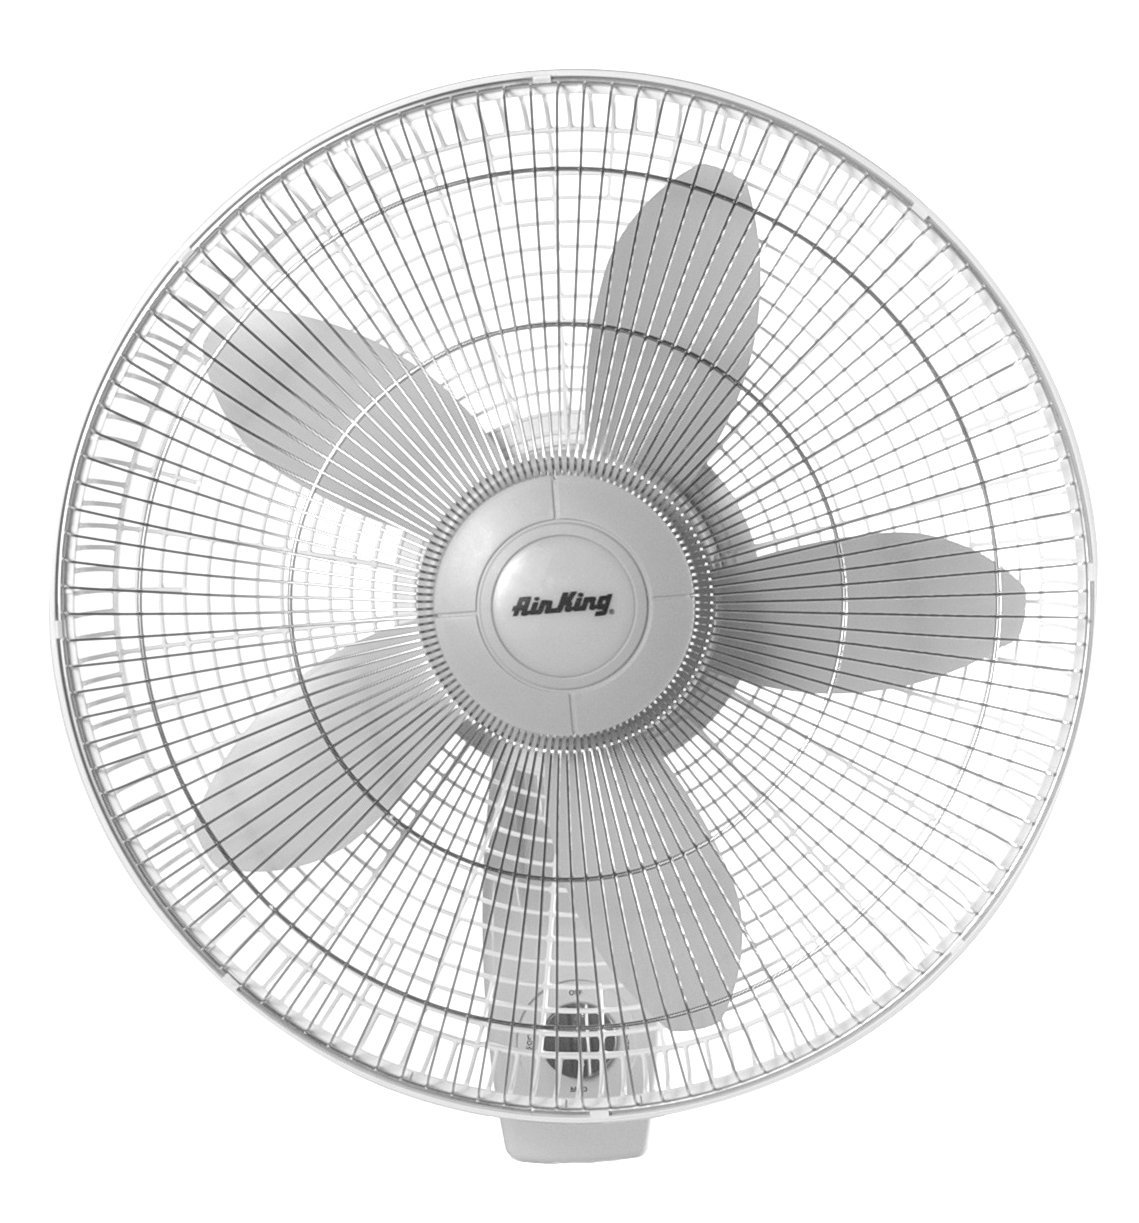 Air King 9018 Commercial Grade Oscillating Wall Mount Fan, 18-Inch (Renewed) by Air King